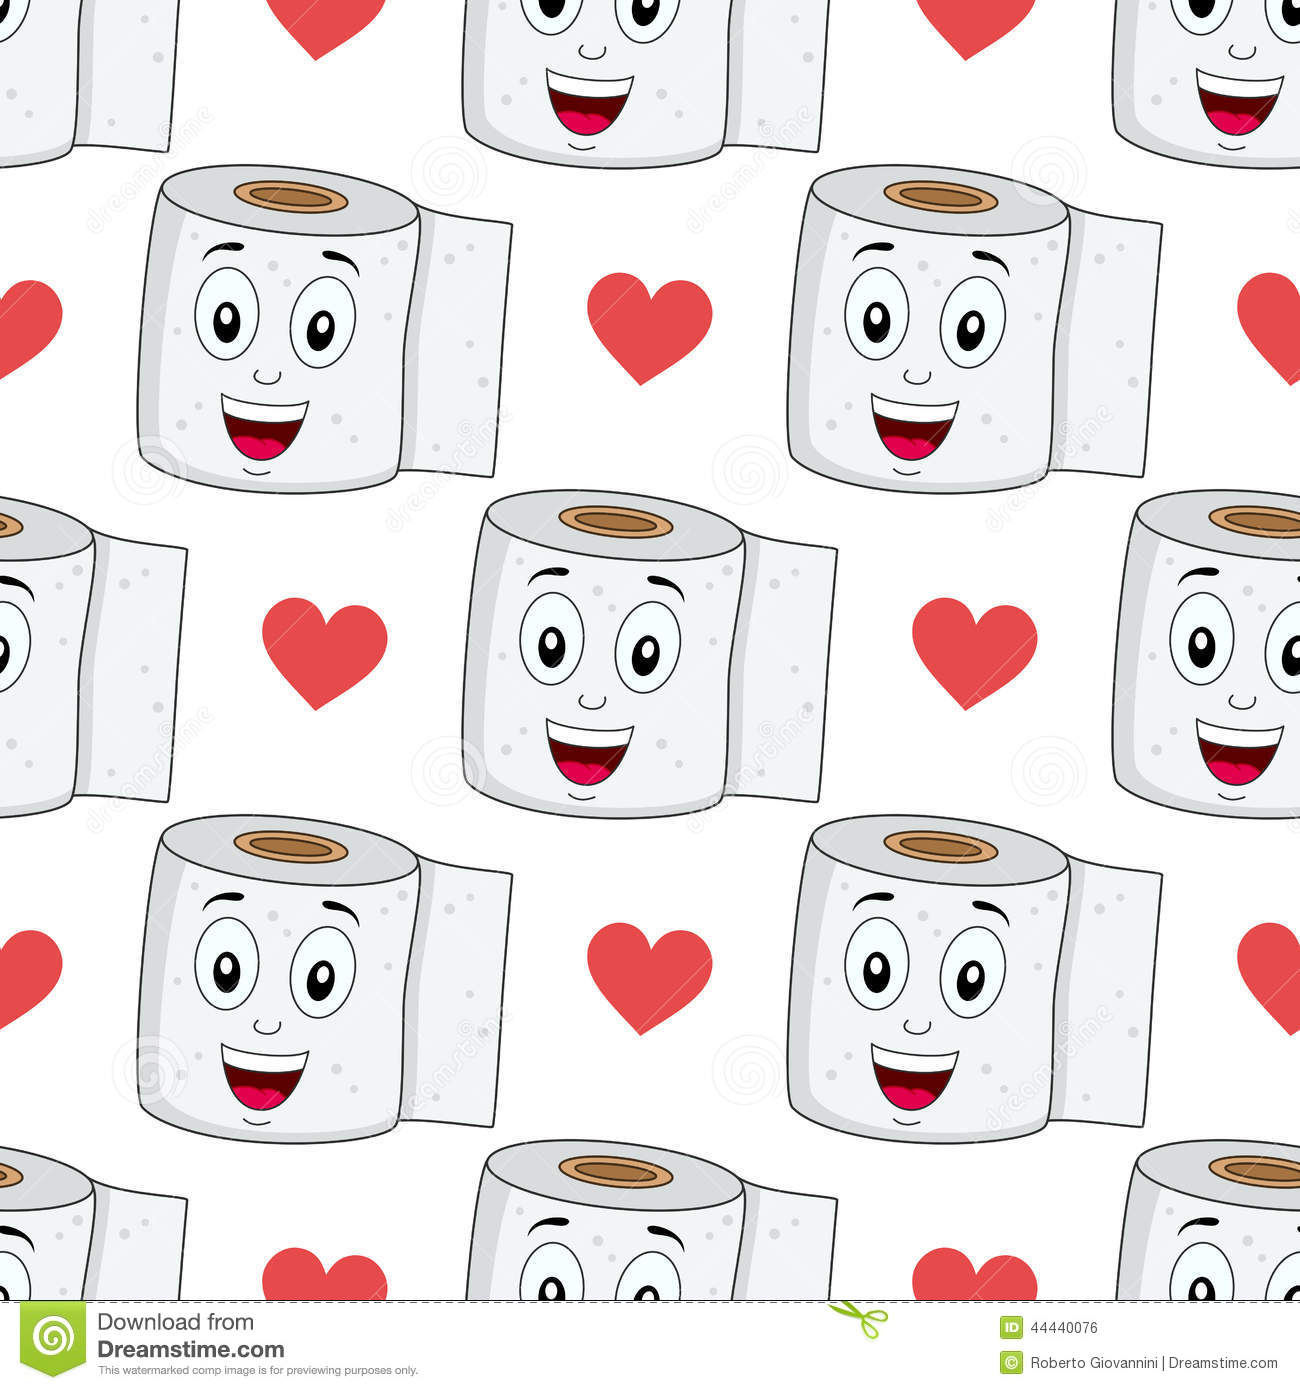 Seamless Pattern With A Cartoon Cute Toilet Paper Character Smiling